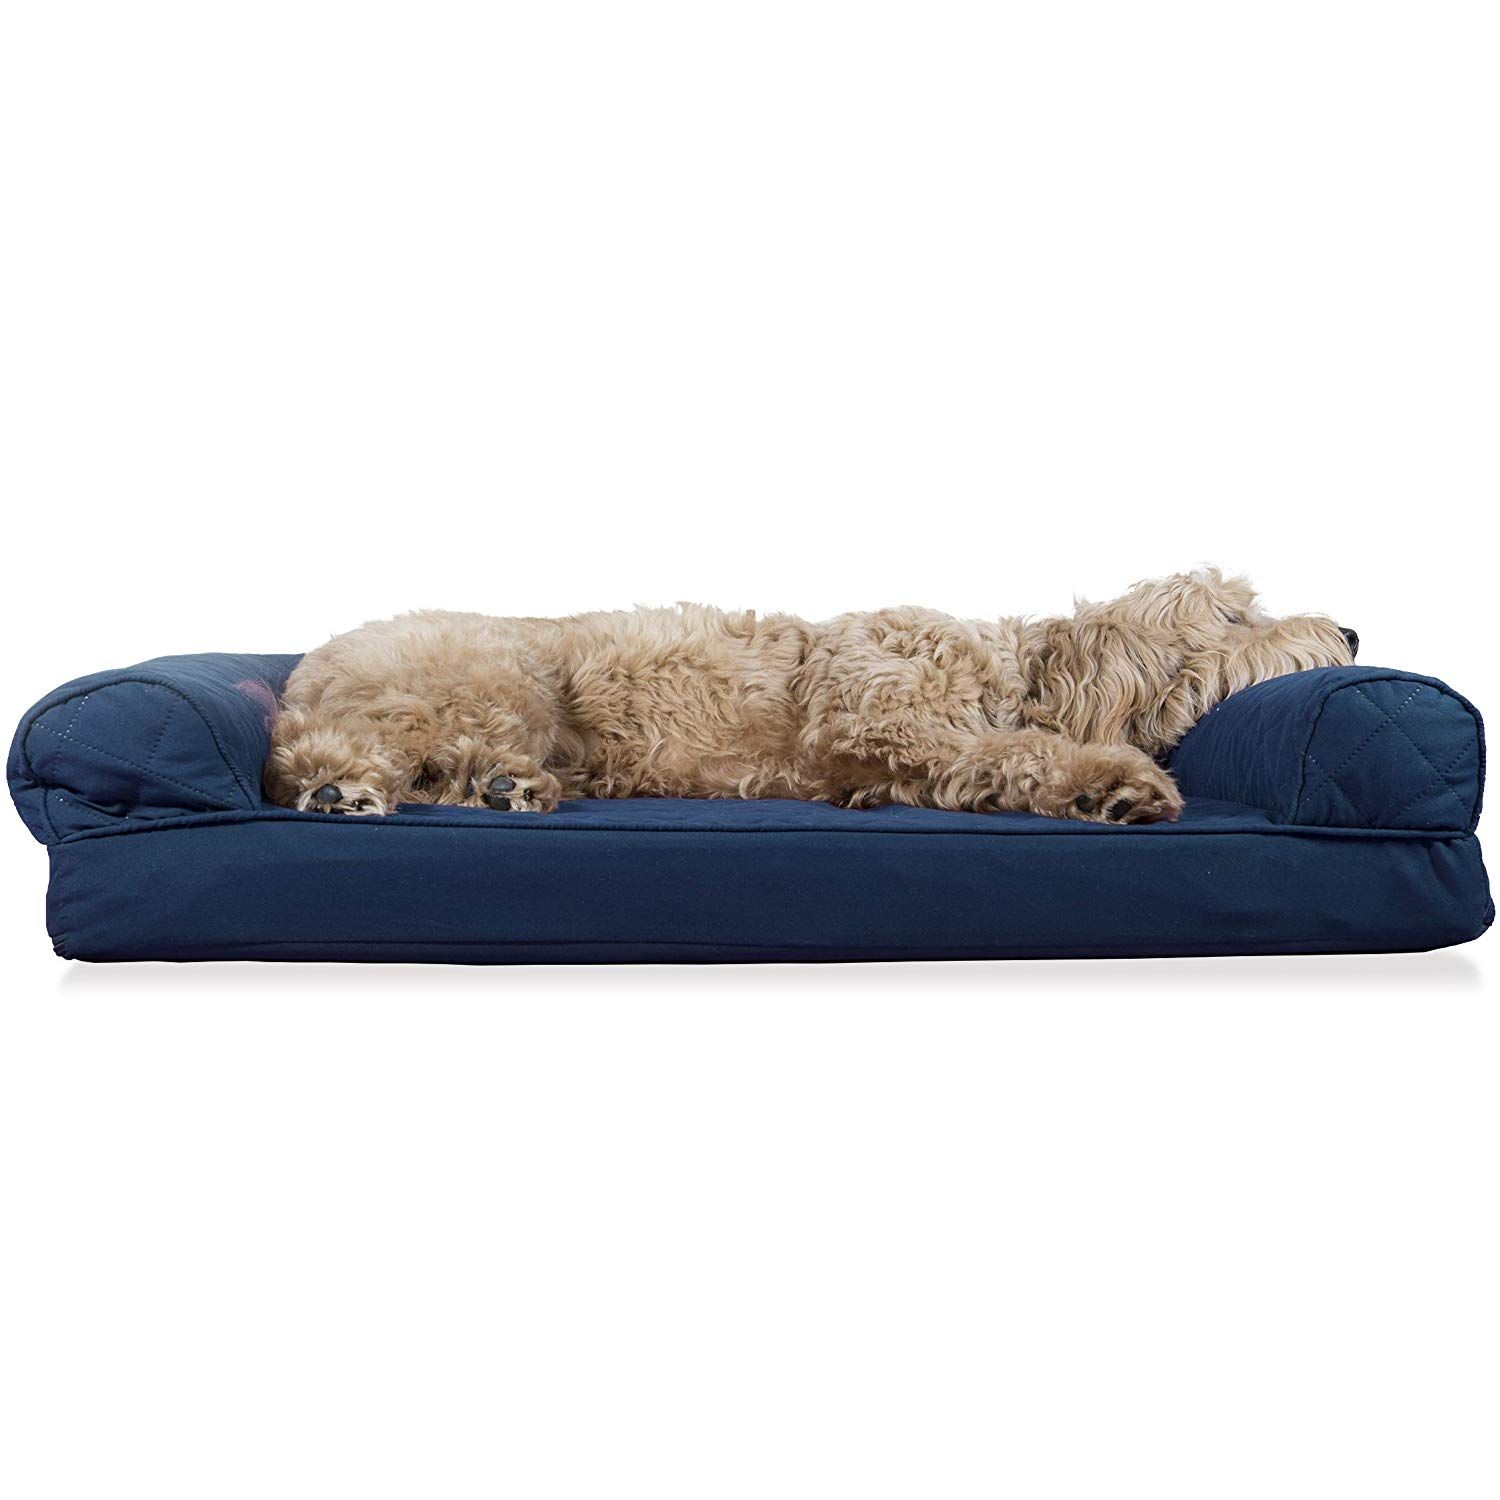 Wondrous Details About Furhaven Pet Dog Bed Orthopedic Quilted Sofa Style Living Room Couch Pet Bed Gmtry Best Dining Table And Chair Ideas Images Gmtryco